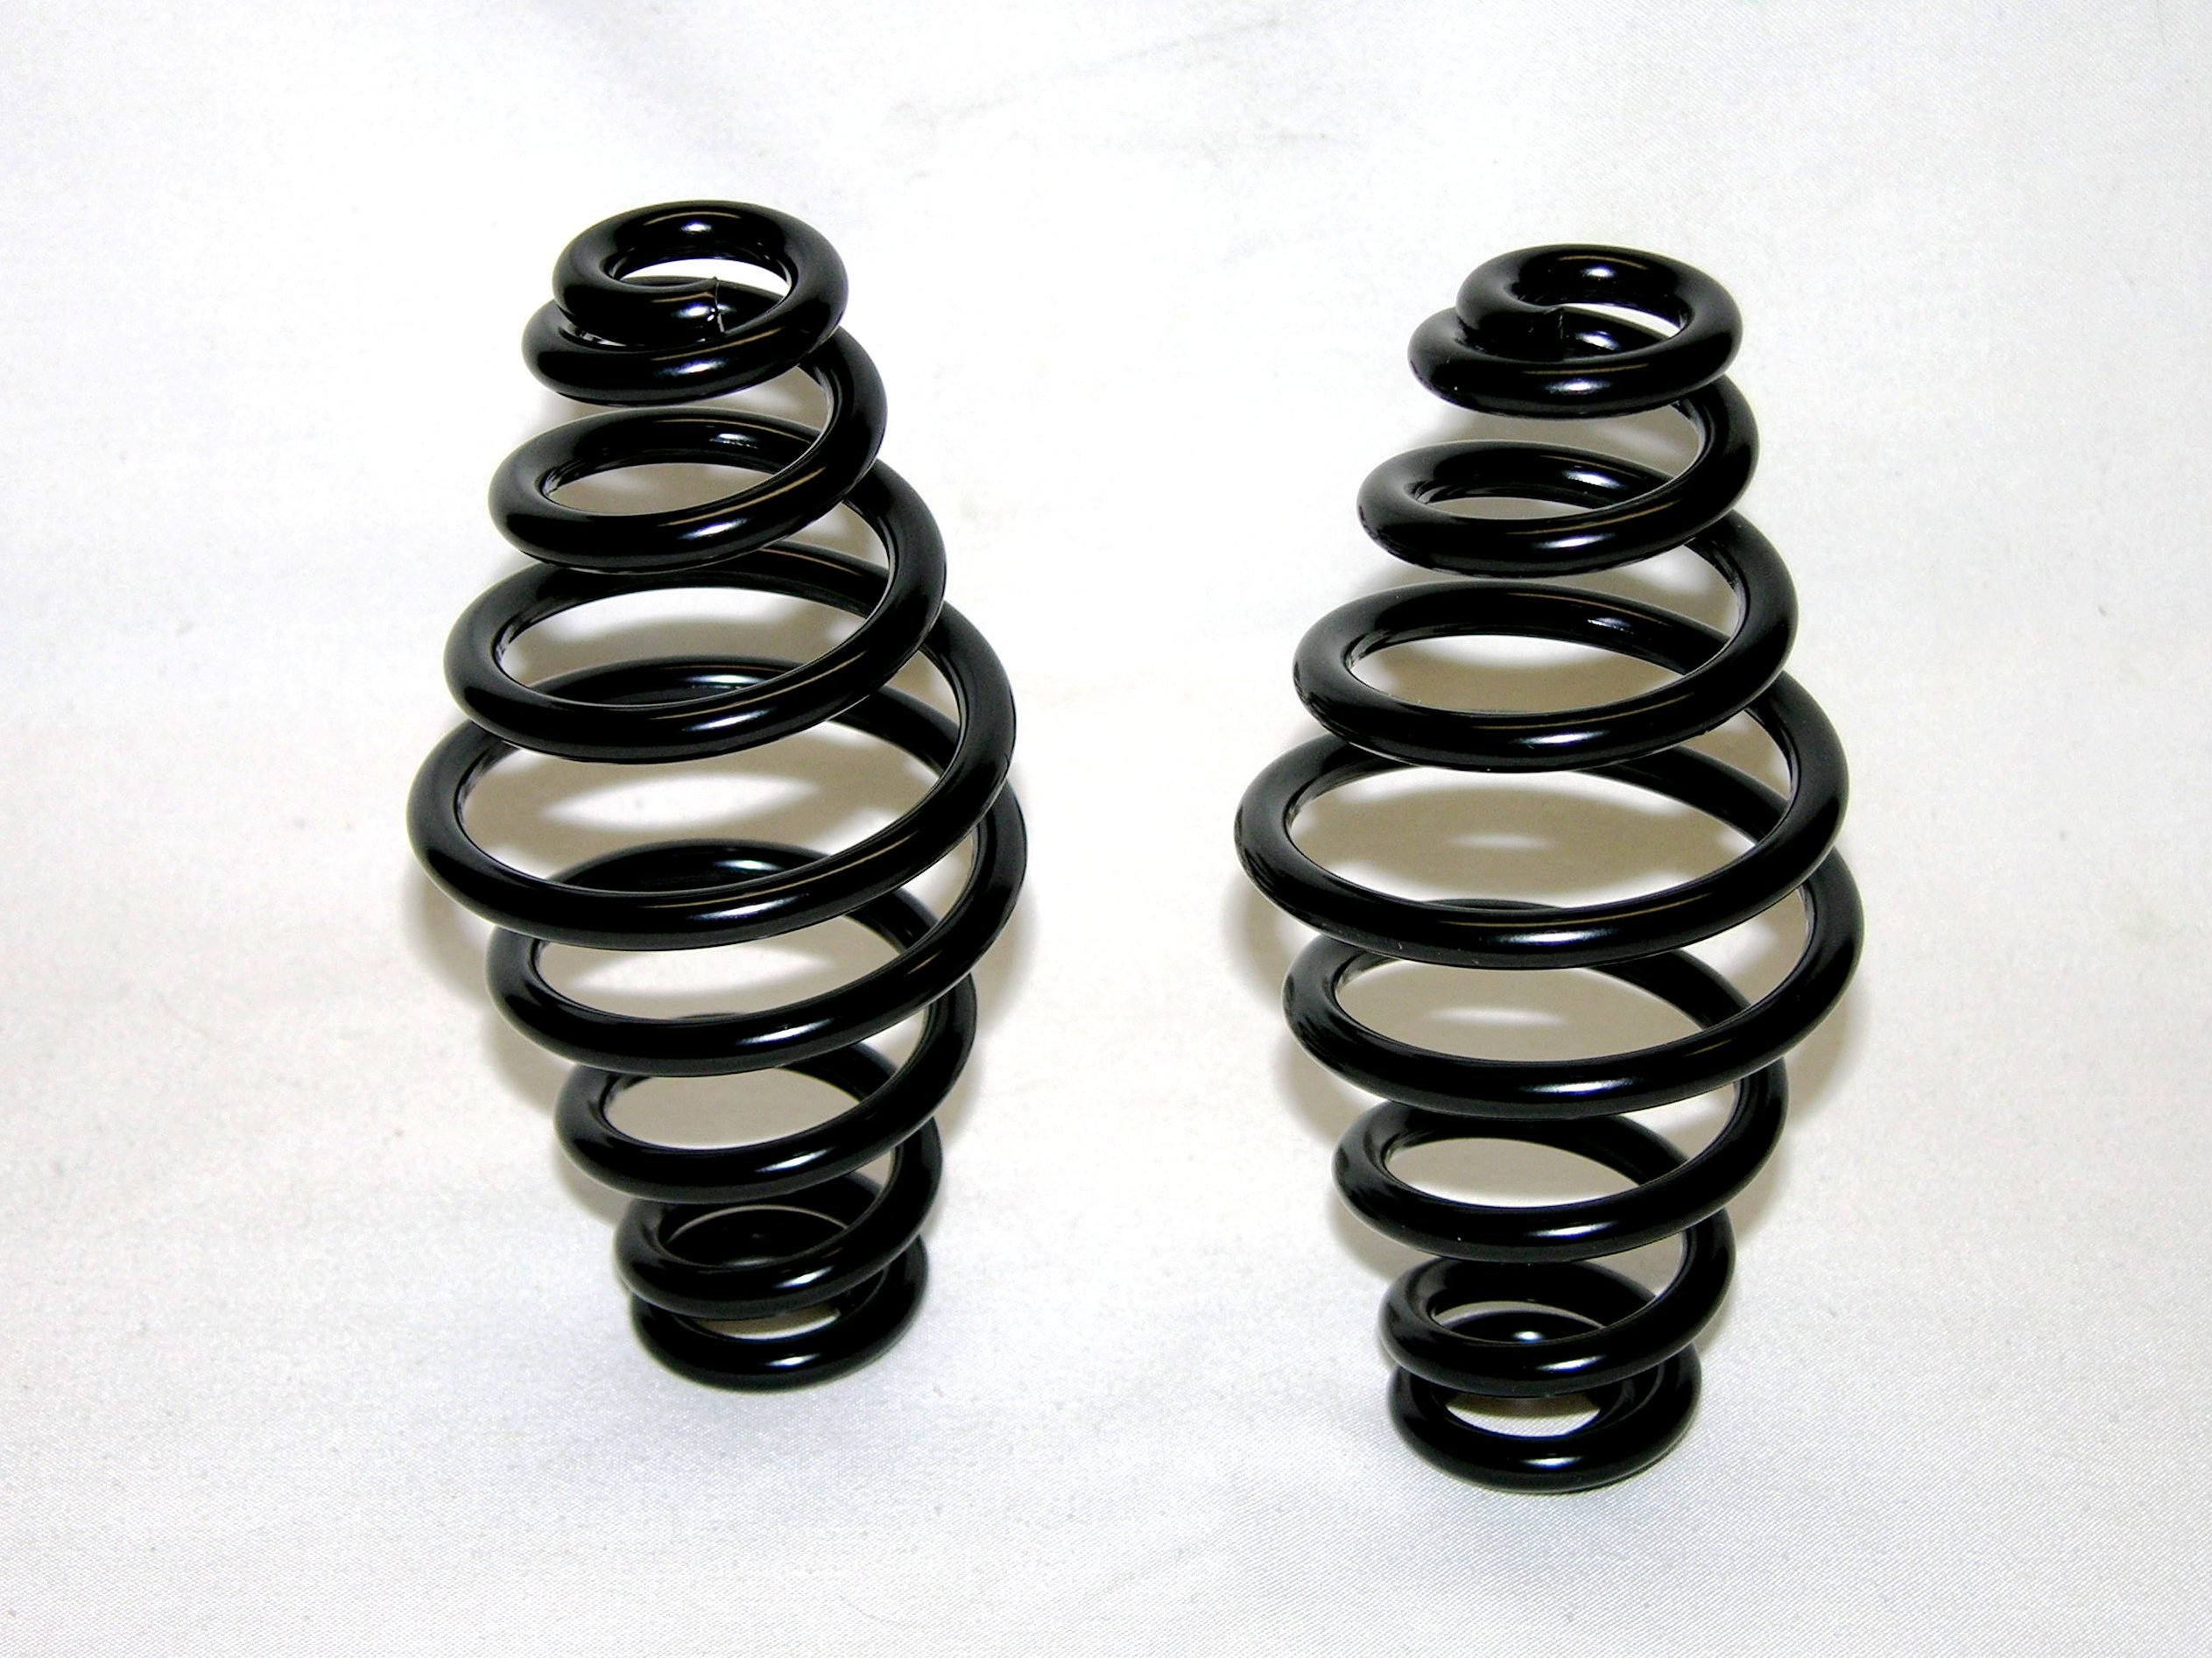 Mr Luckys Universal Fit Black Powder Coated 5 inch Solo Seat Springs for Harley, Bobber, Vintage, Retro, Custom.